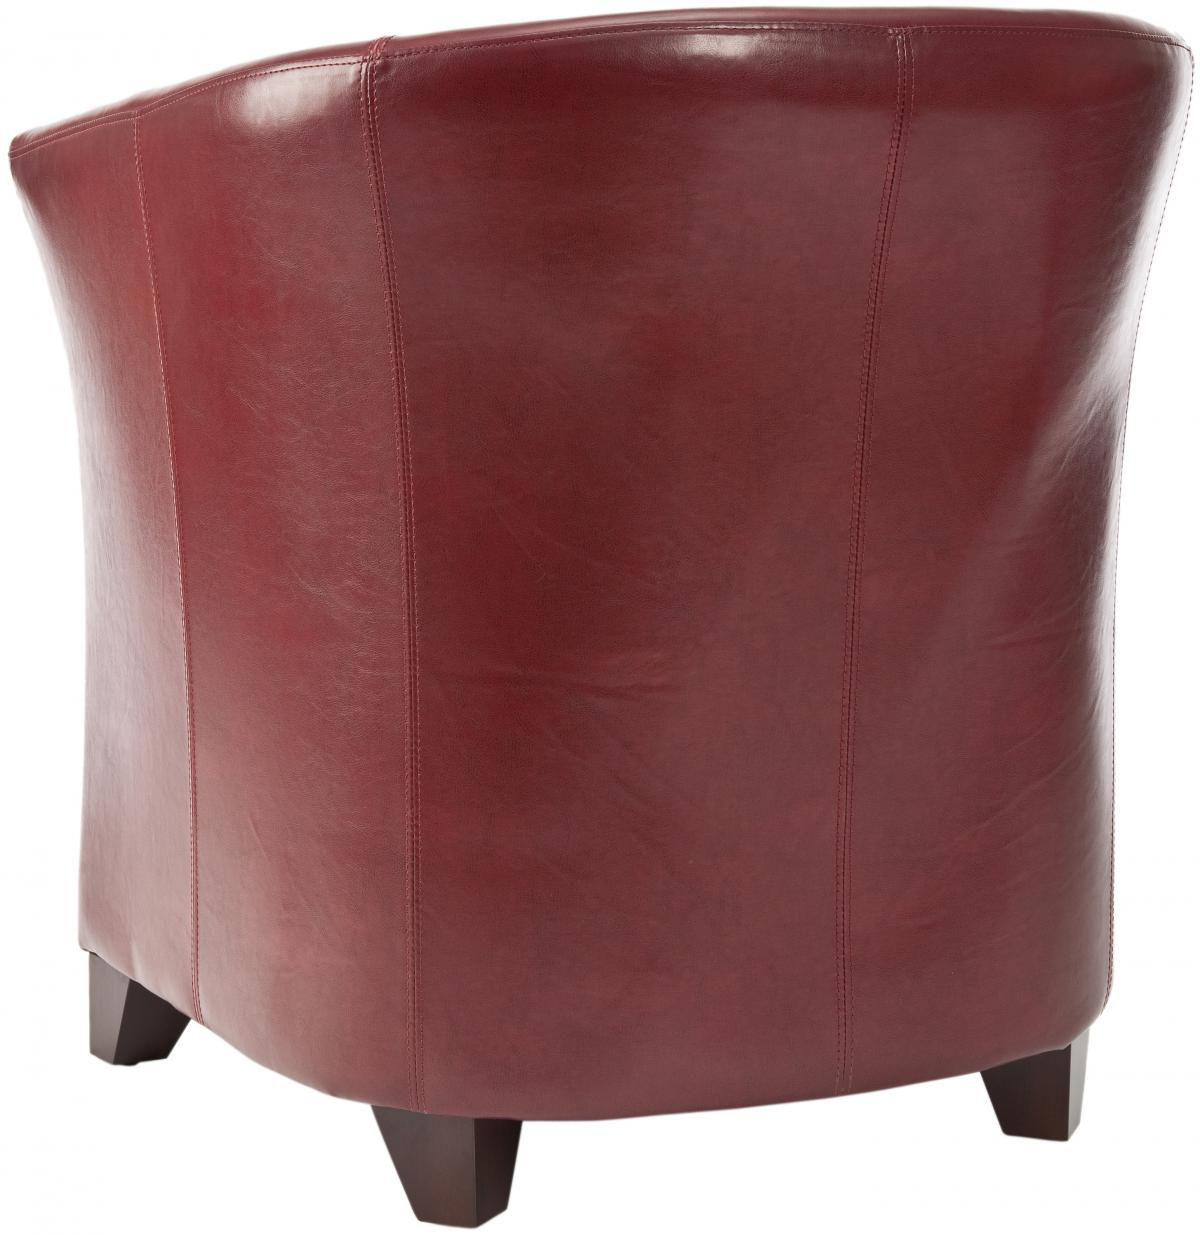 Tub Chairs Safavieh Hud8204a Lorraine Tub Chair